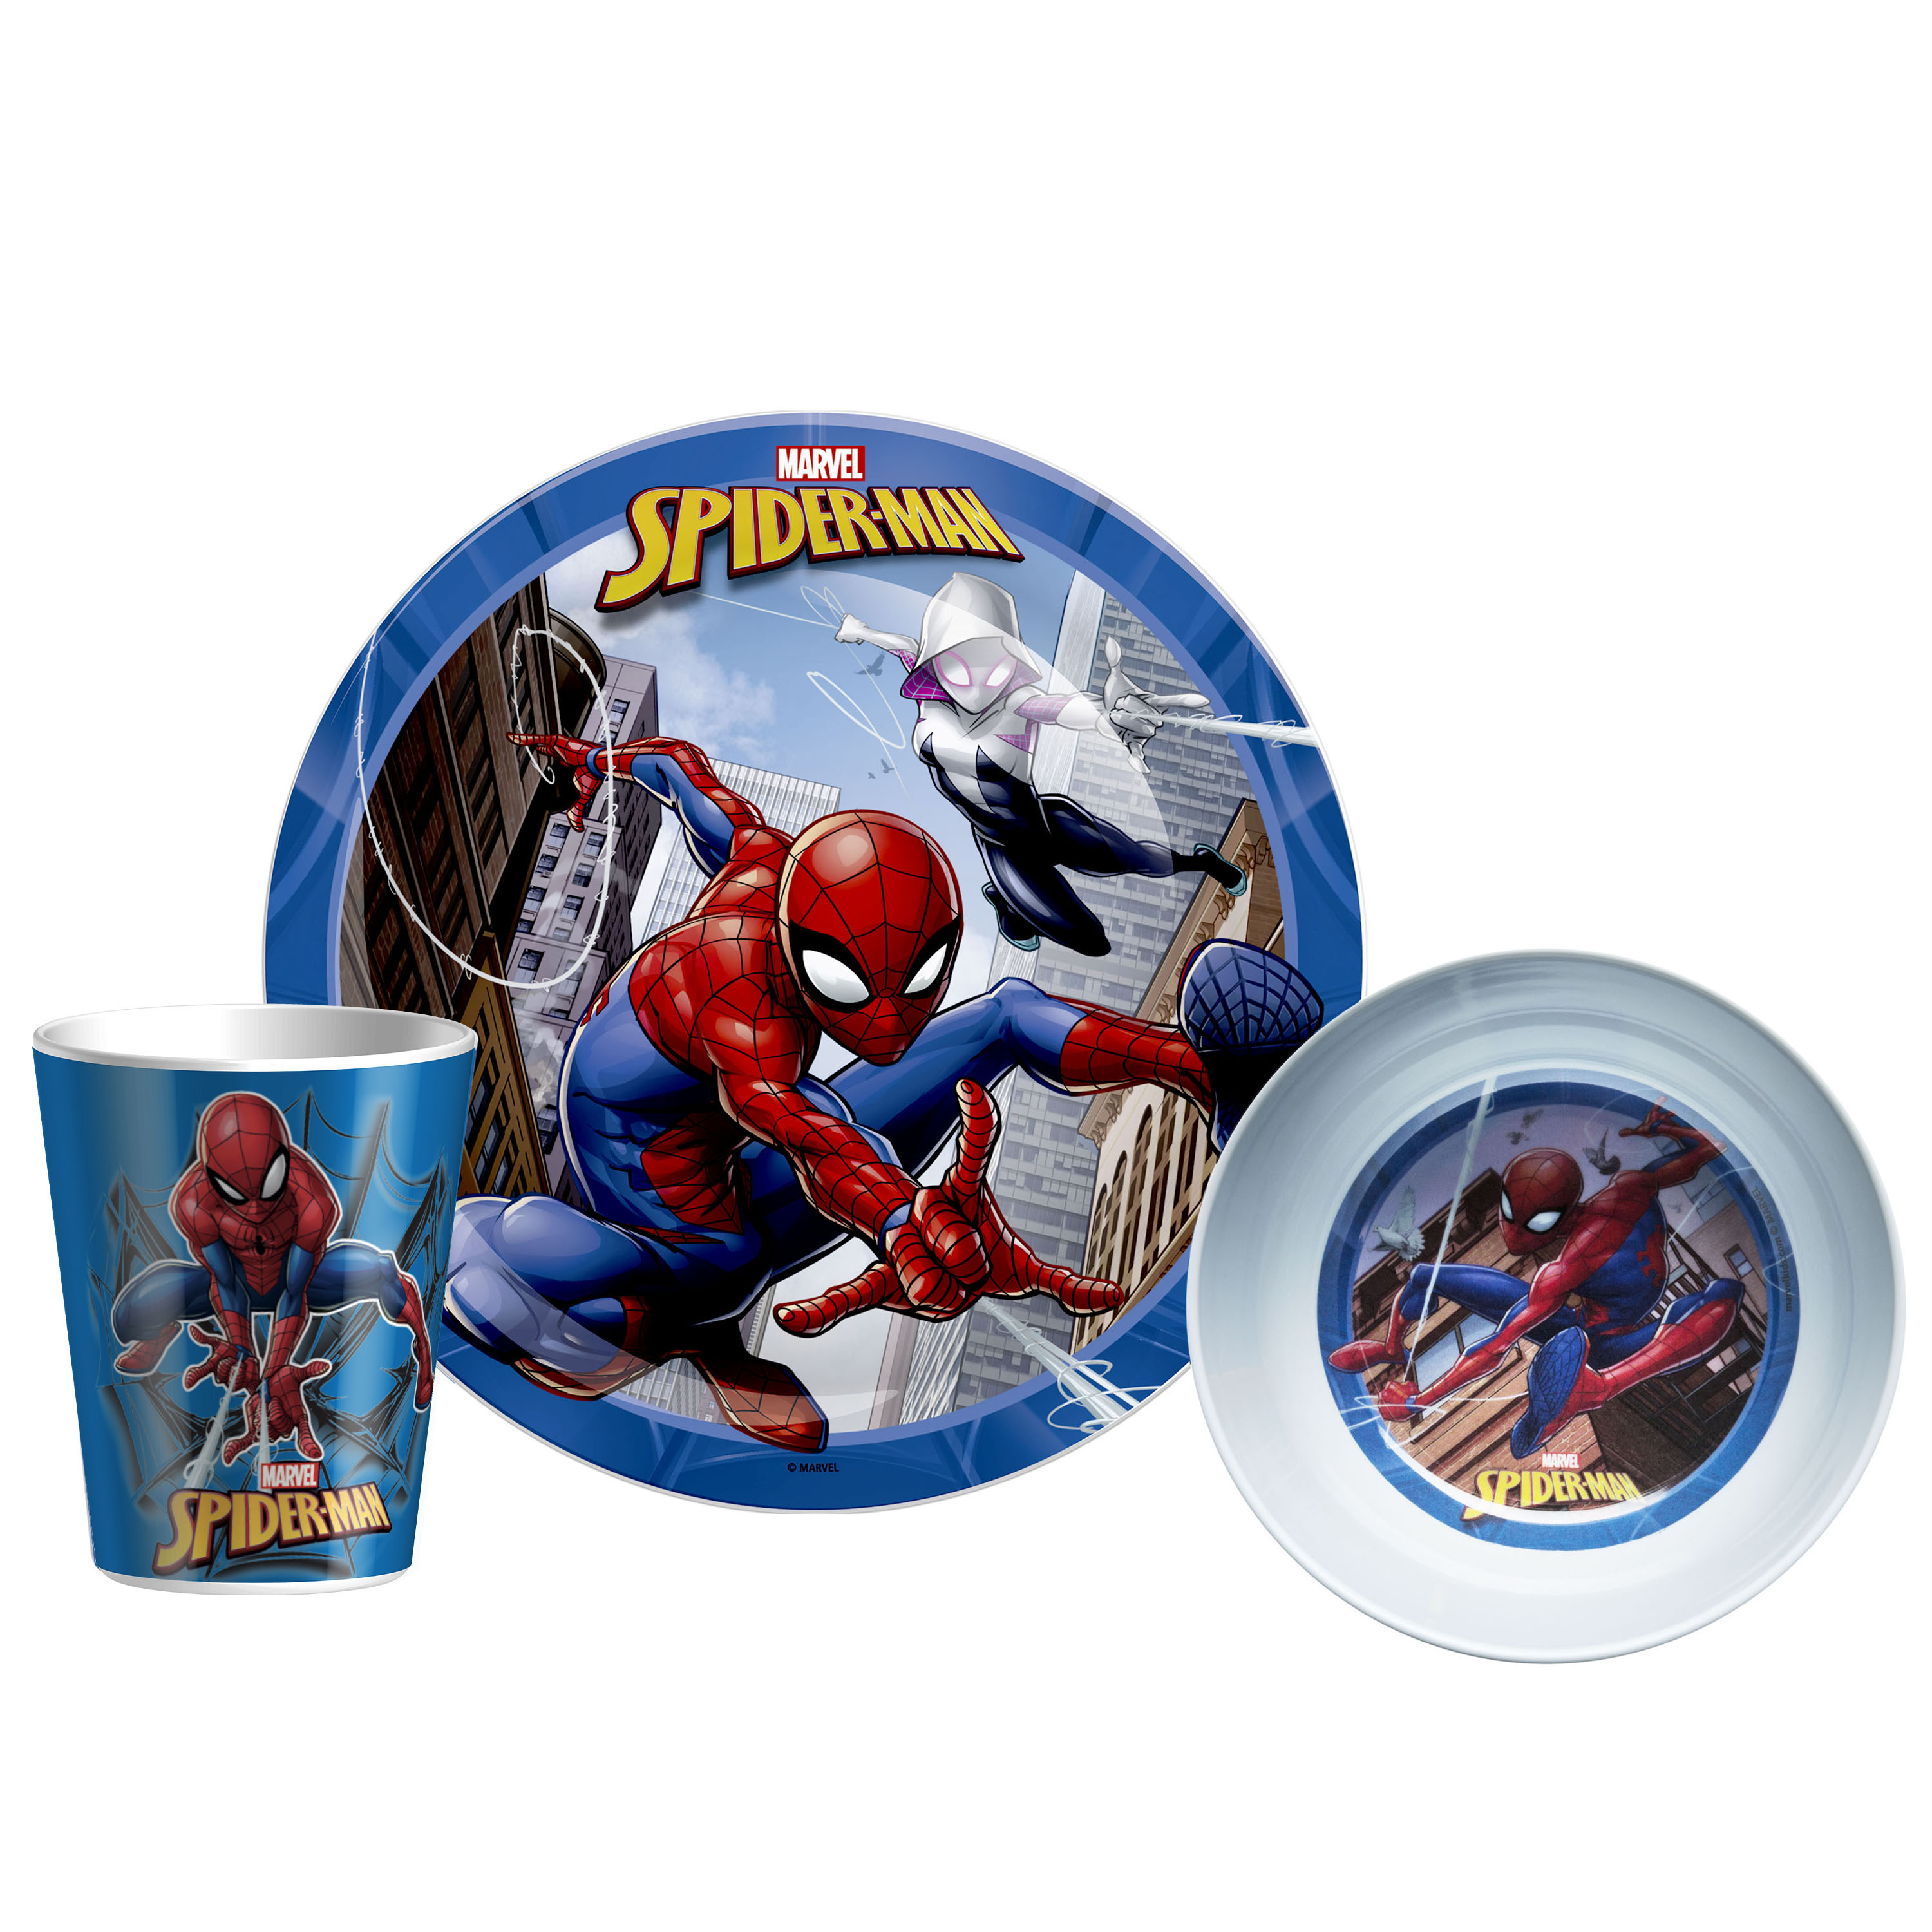 Marvel Kid's Dinnerware Set, Spider-Man, 3-piece set slideshow image 1